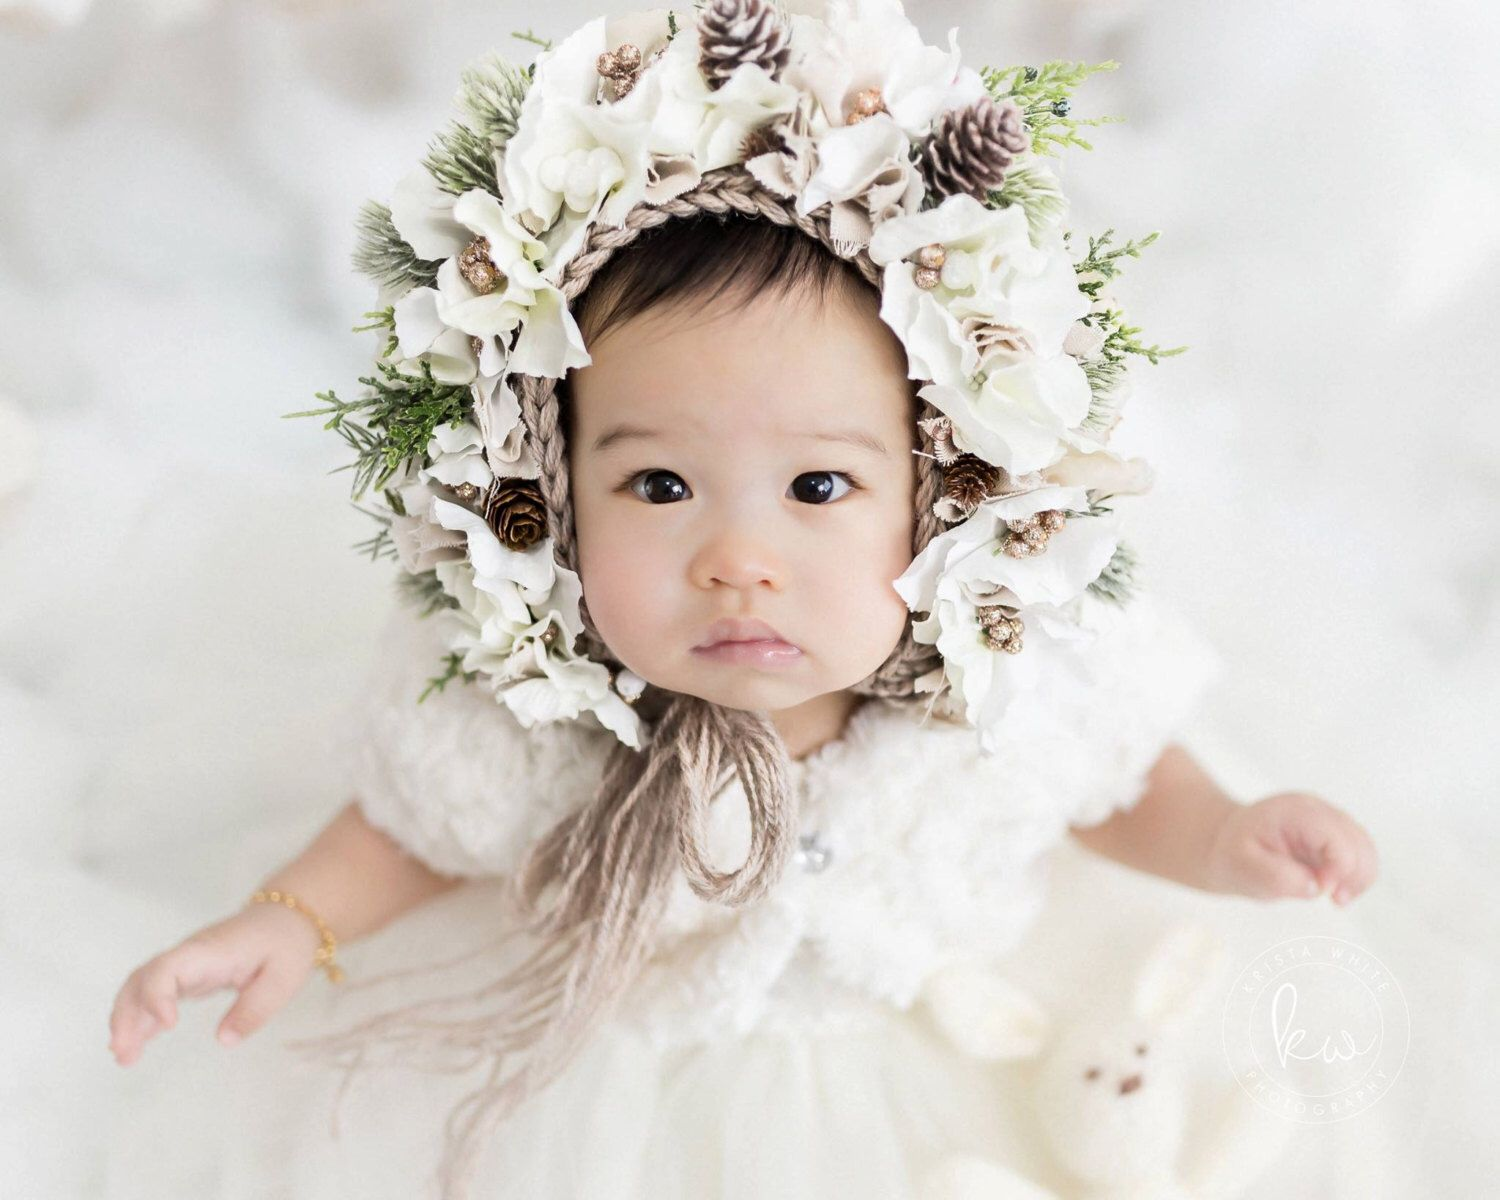 Pin by dill on photography tips tricks baby girl hats